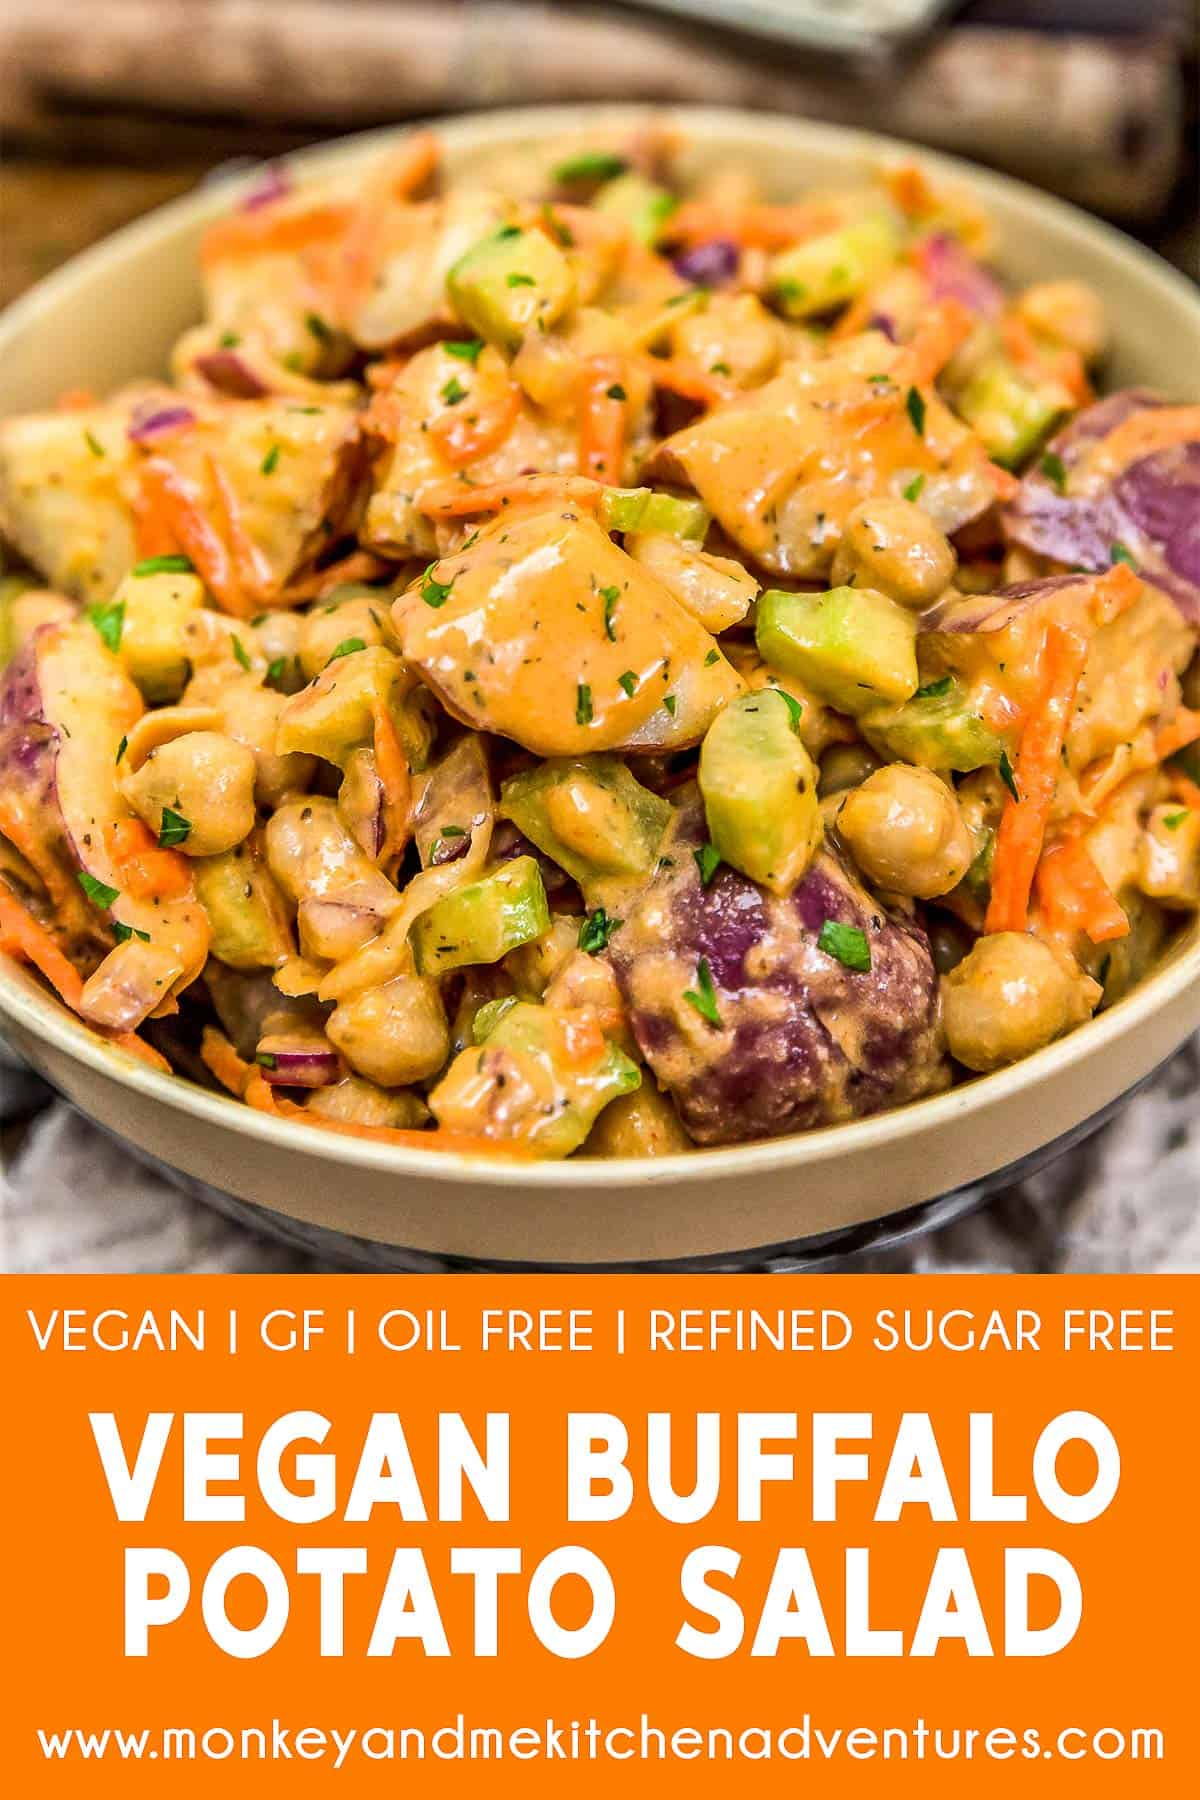 Vegan Buffalo Potato Salad with text description